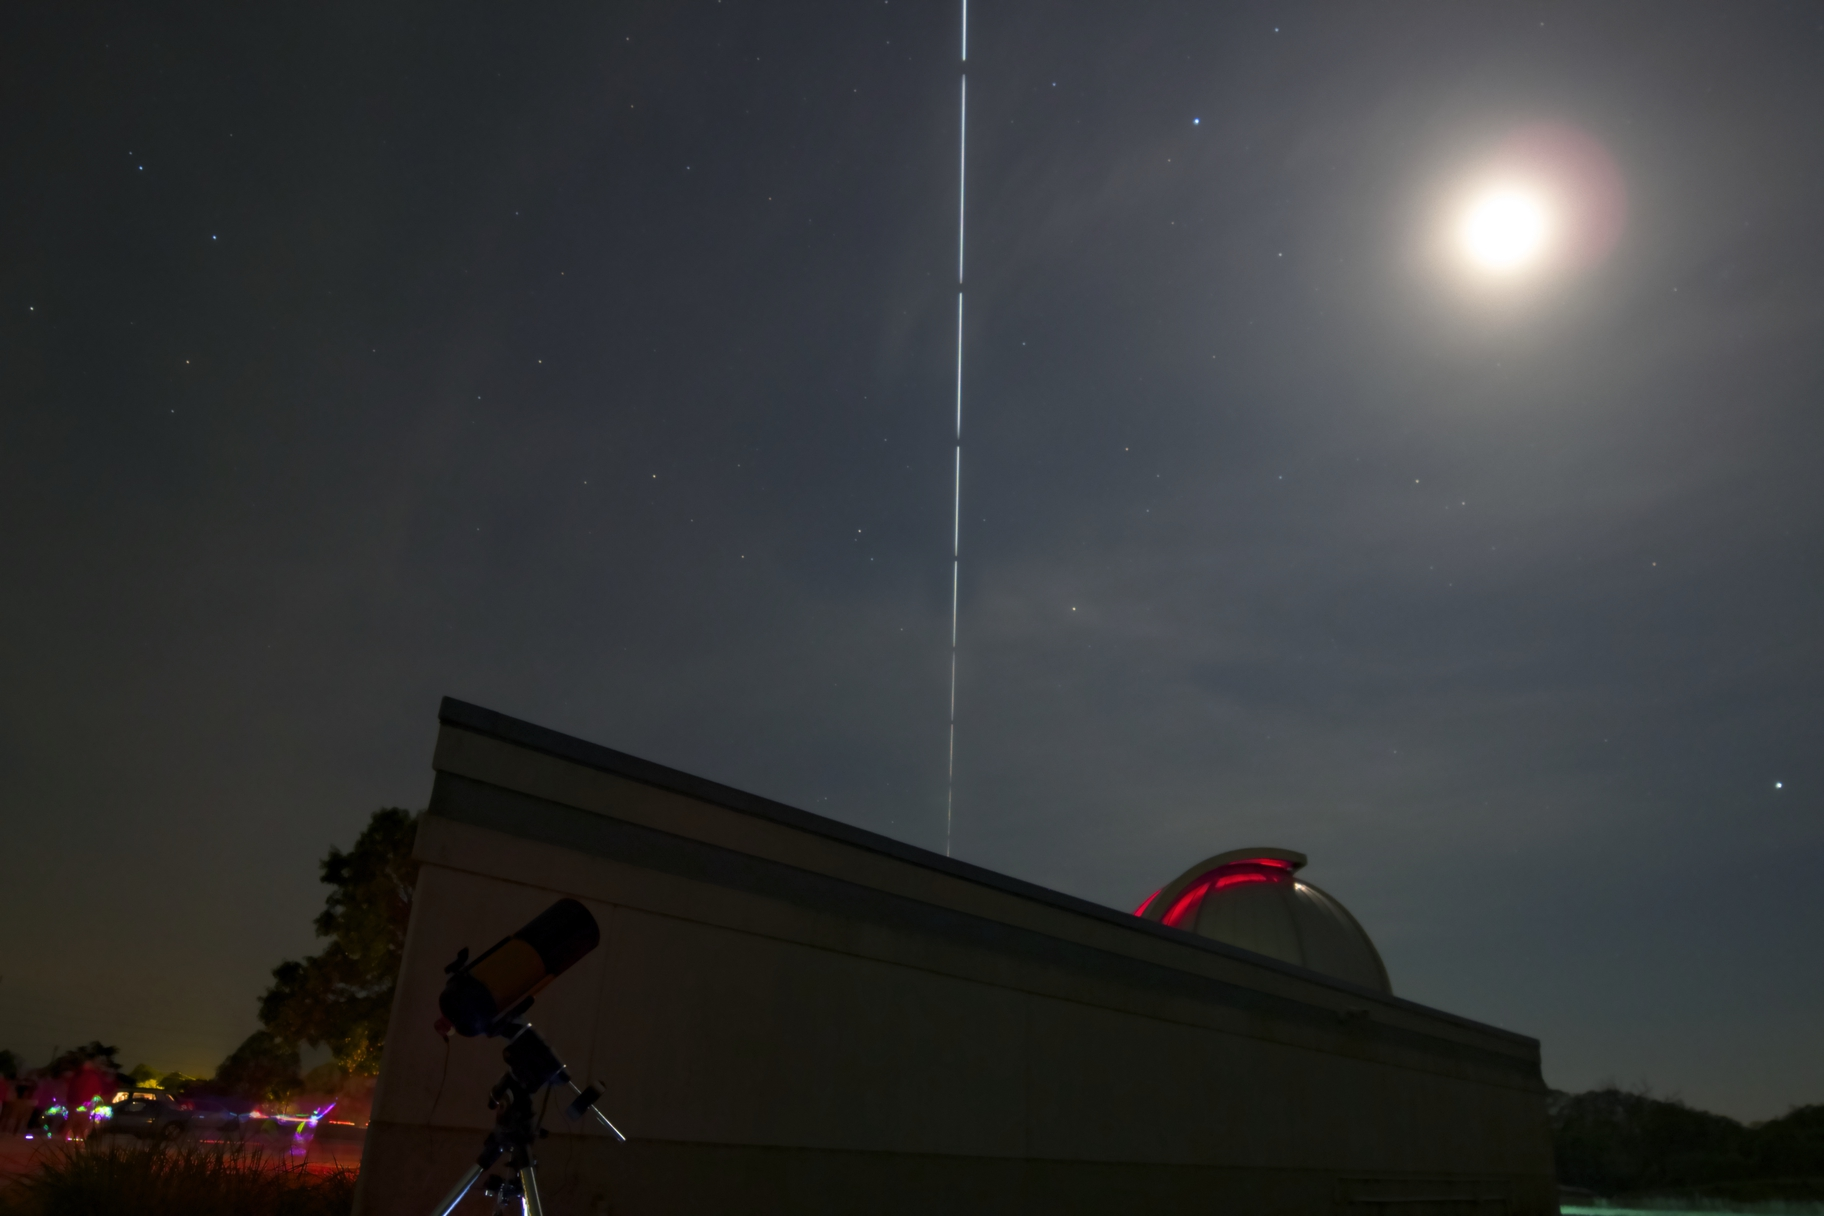 ISS transit captured in 14mm from the Lake Afton Observatory in April 2018